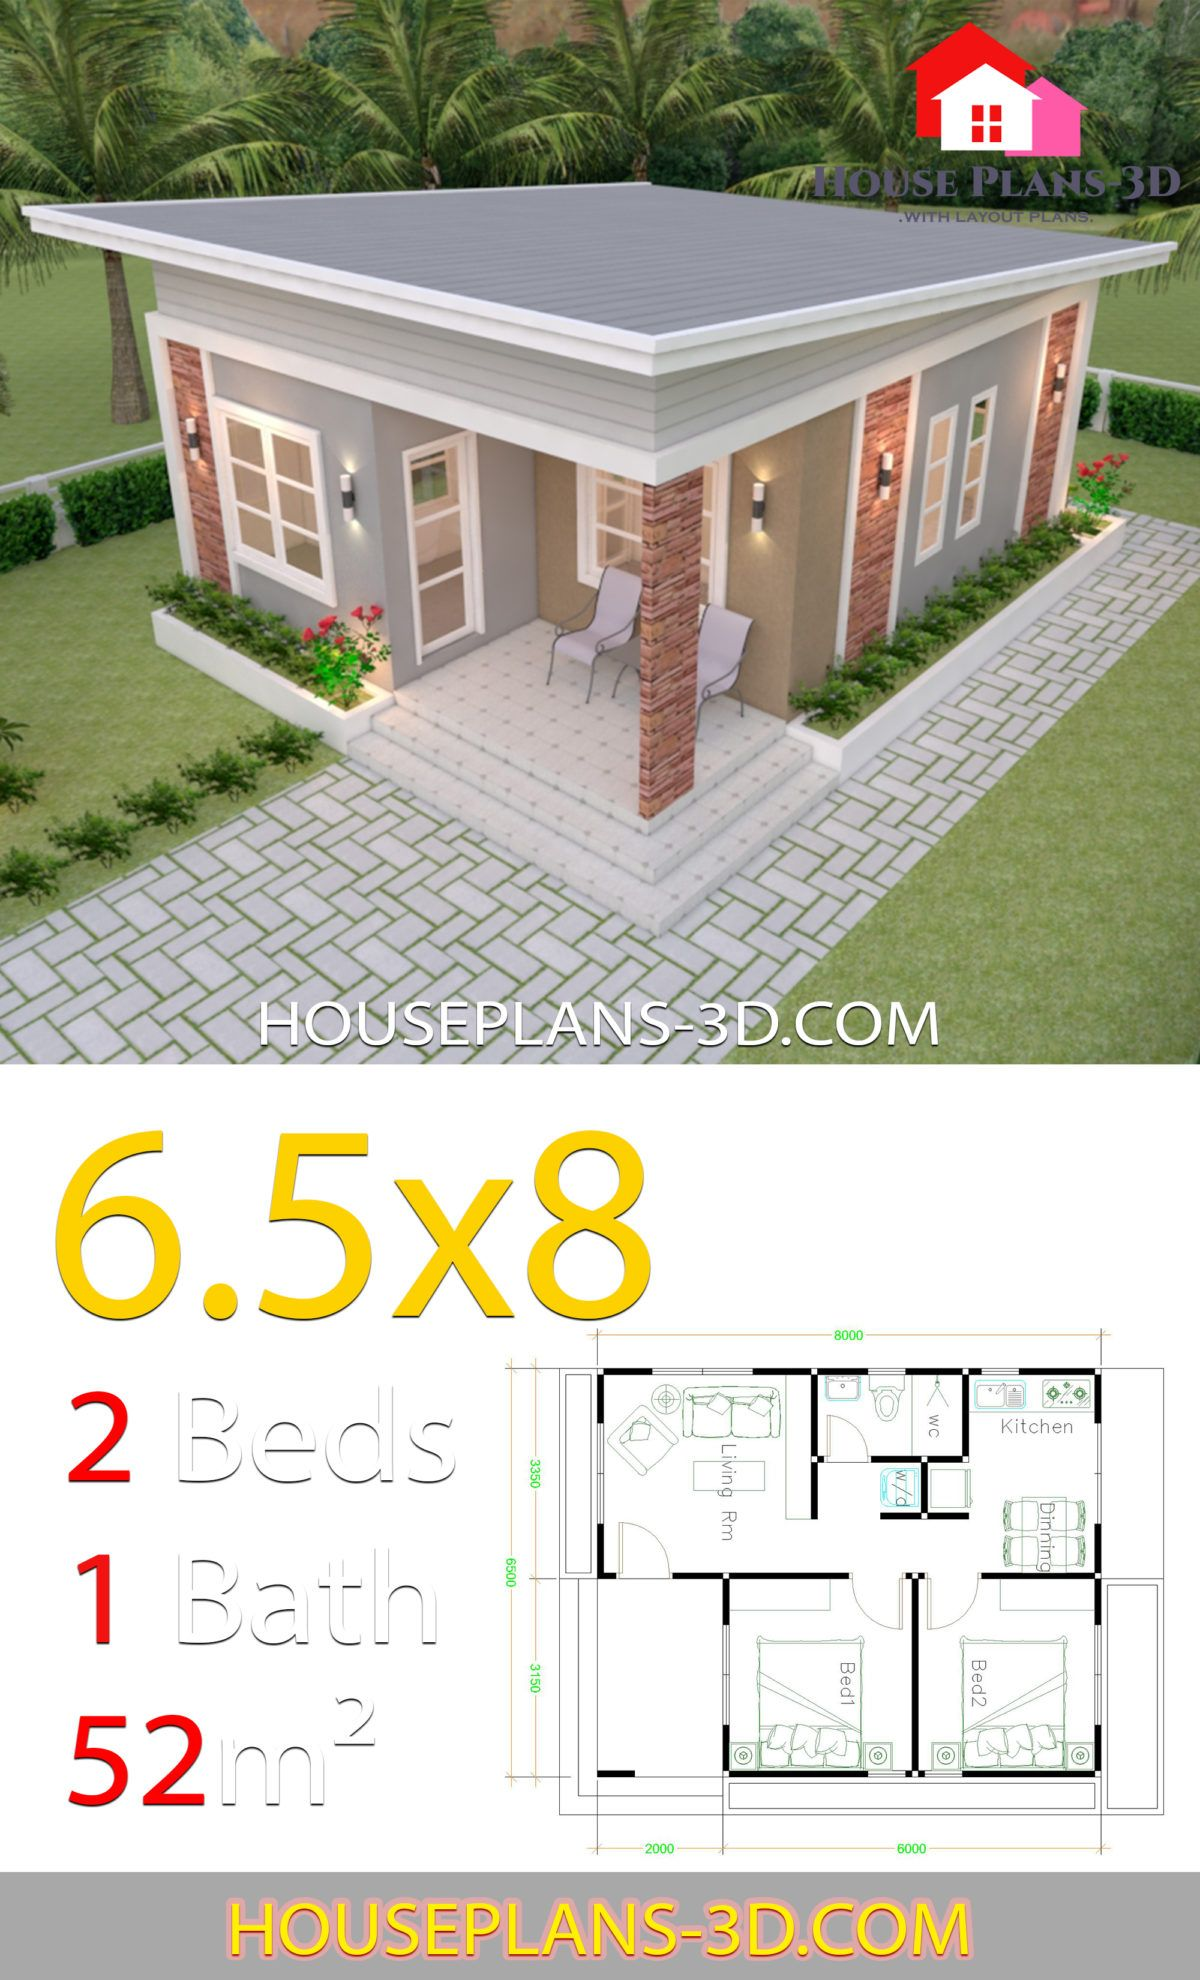 House Design Plans 6 5x8 With 2 Bedrooms Shed Roof House Plans 3d Simple House Design Cottage Style House Plans Beautiful House Plans